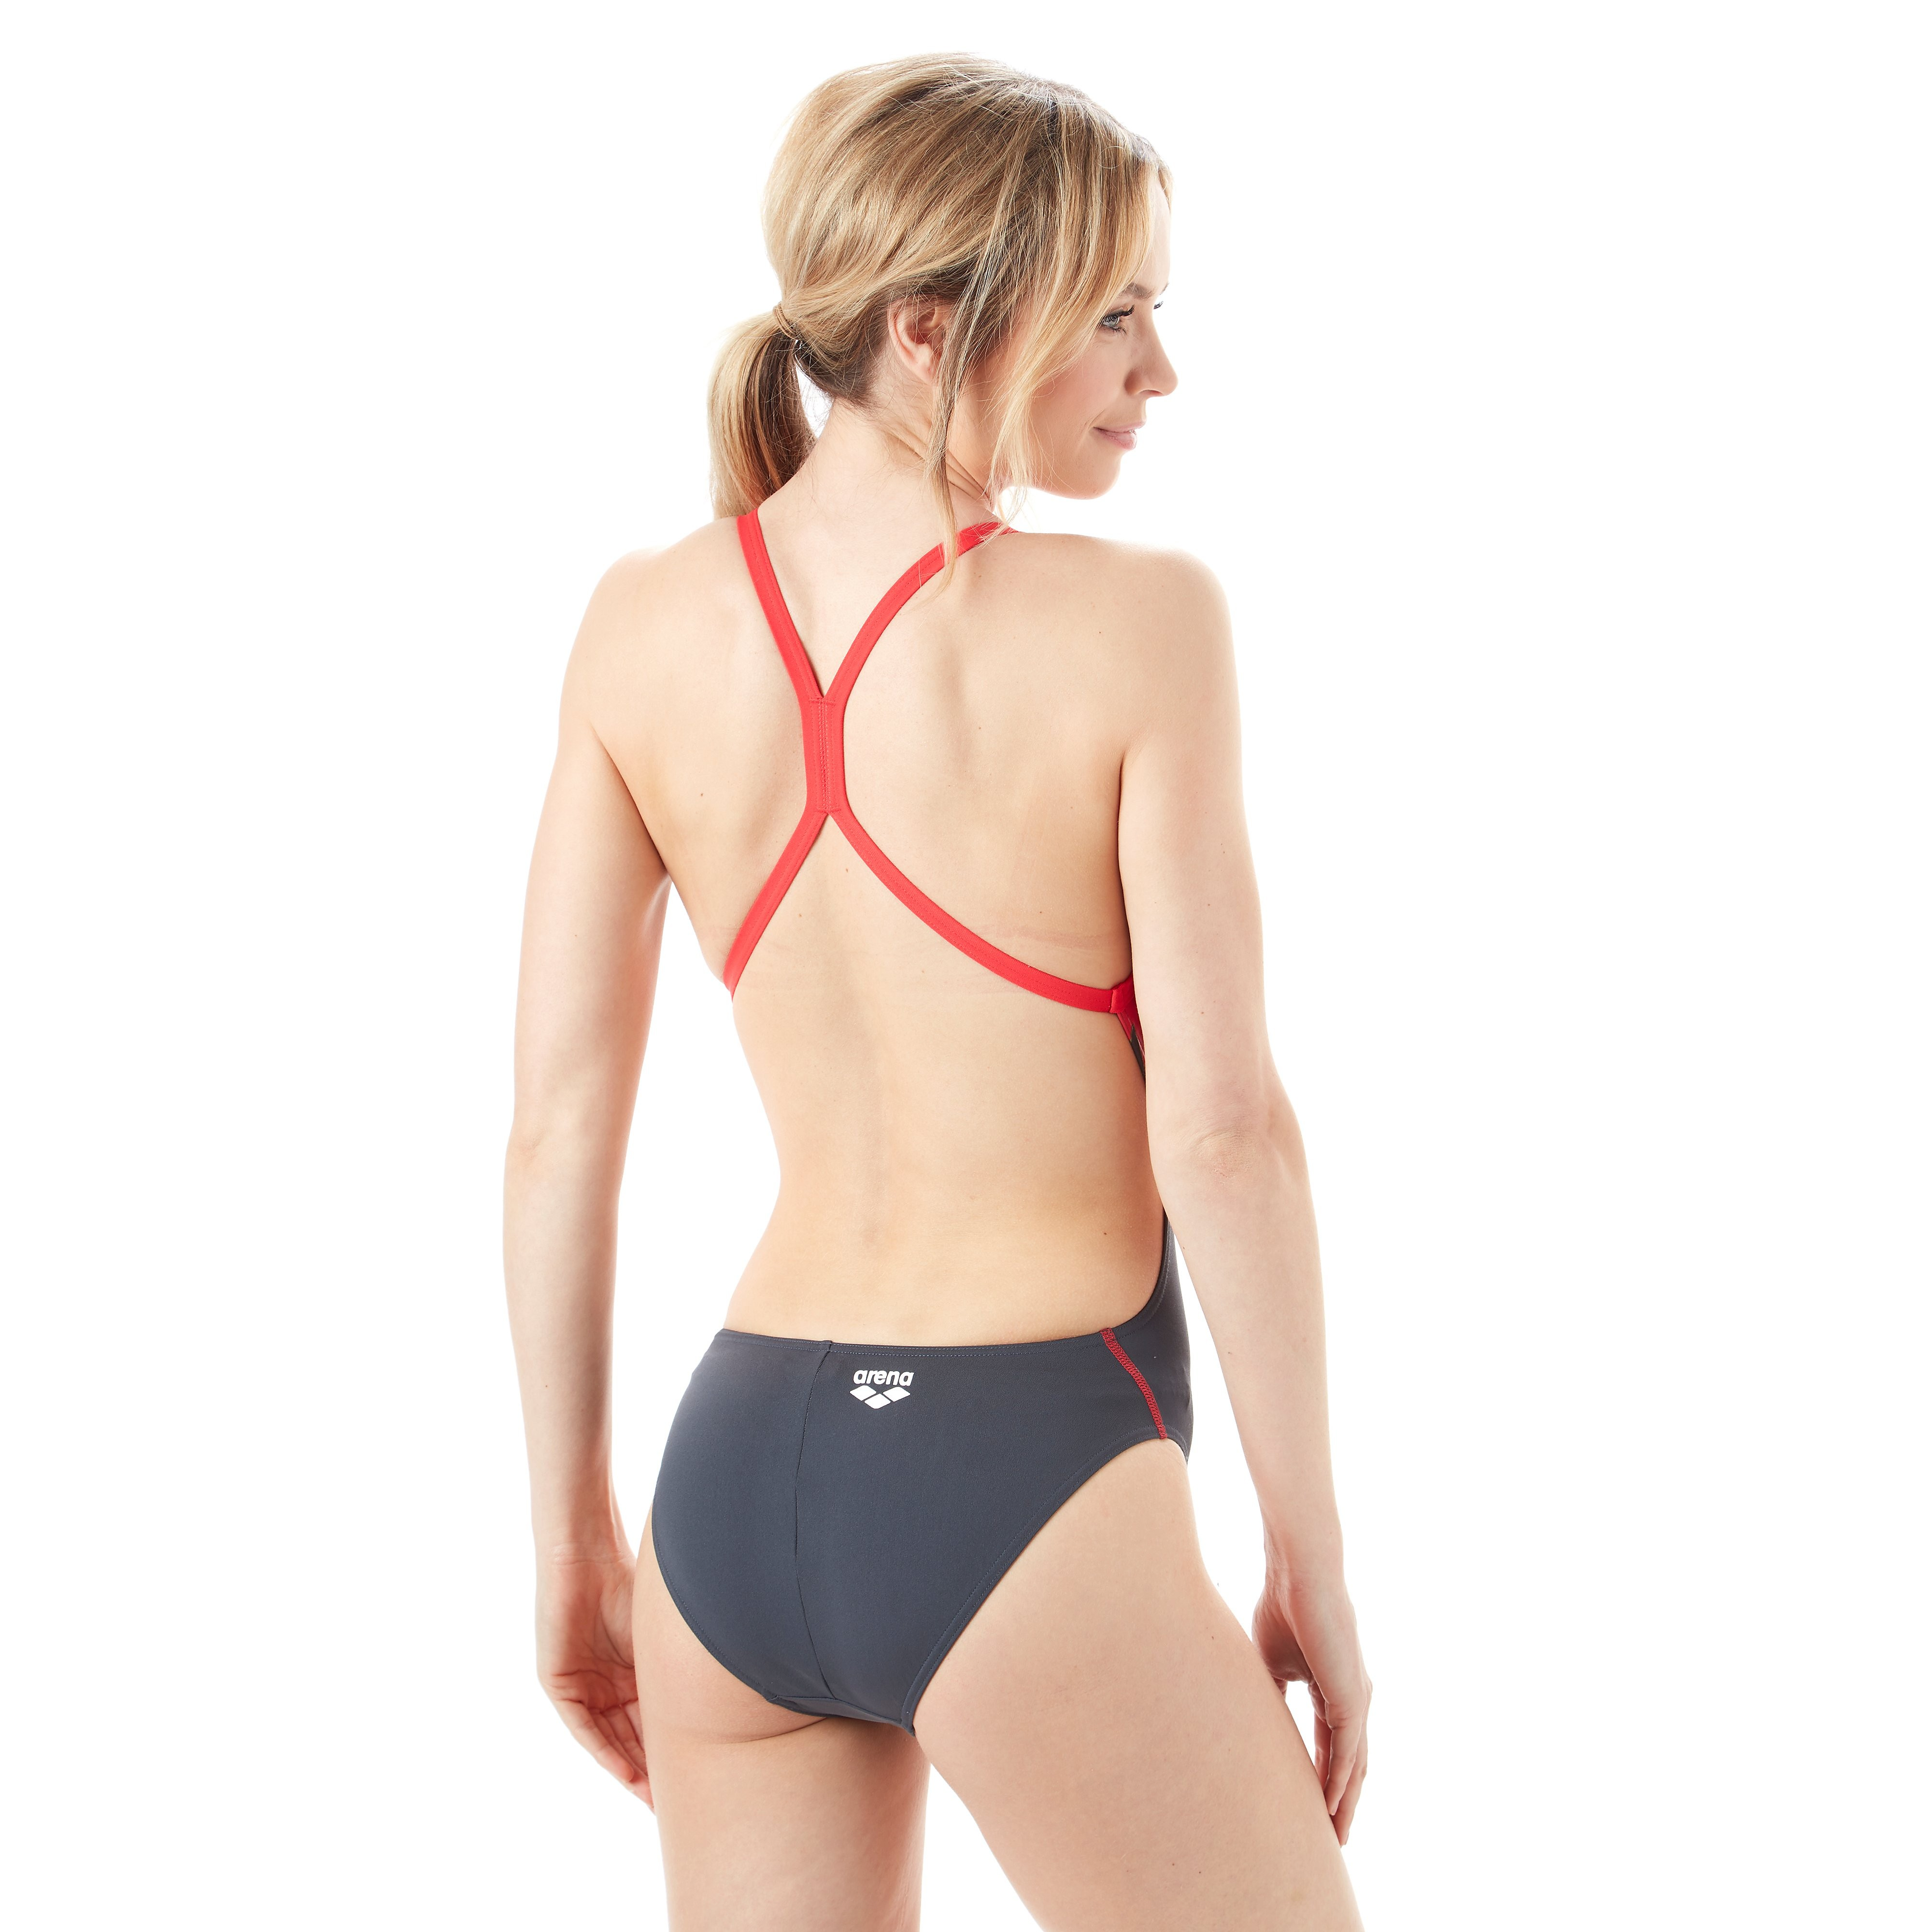 Arena Commonwealth Games Edition Women's Swimsuit